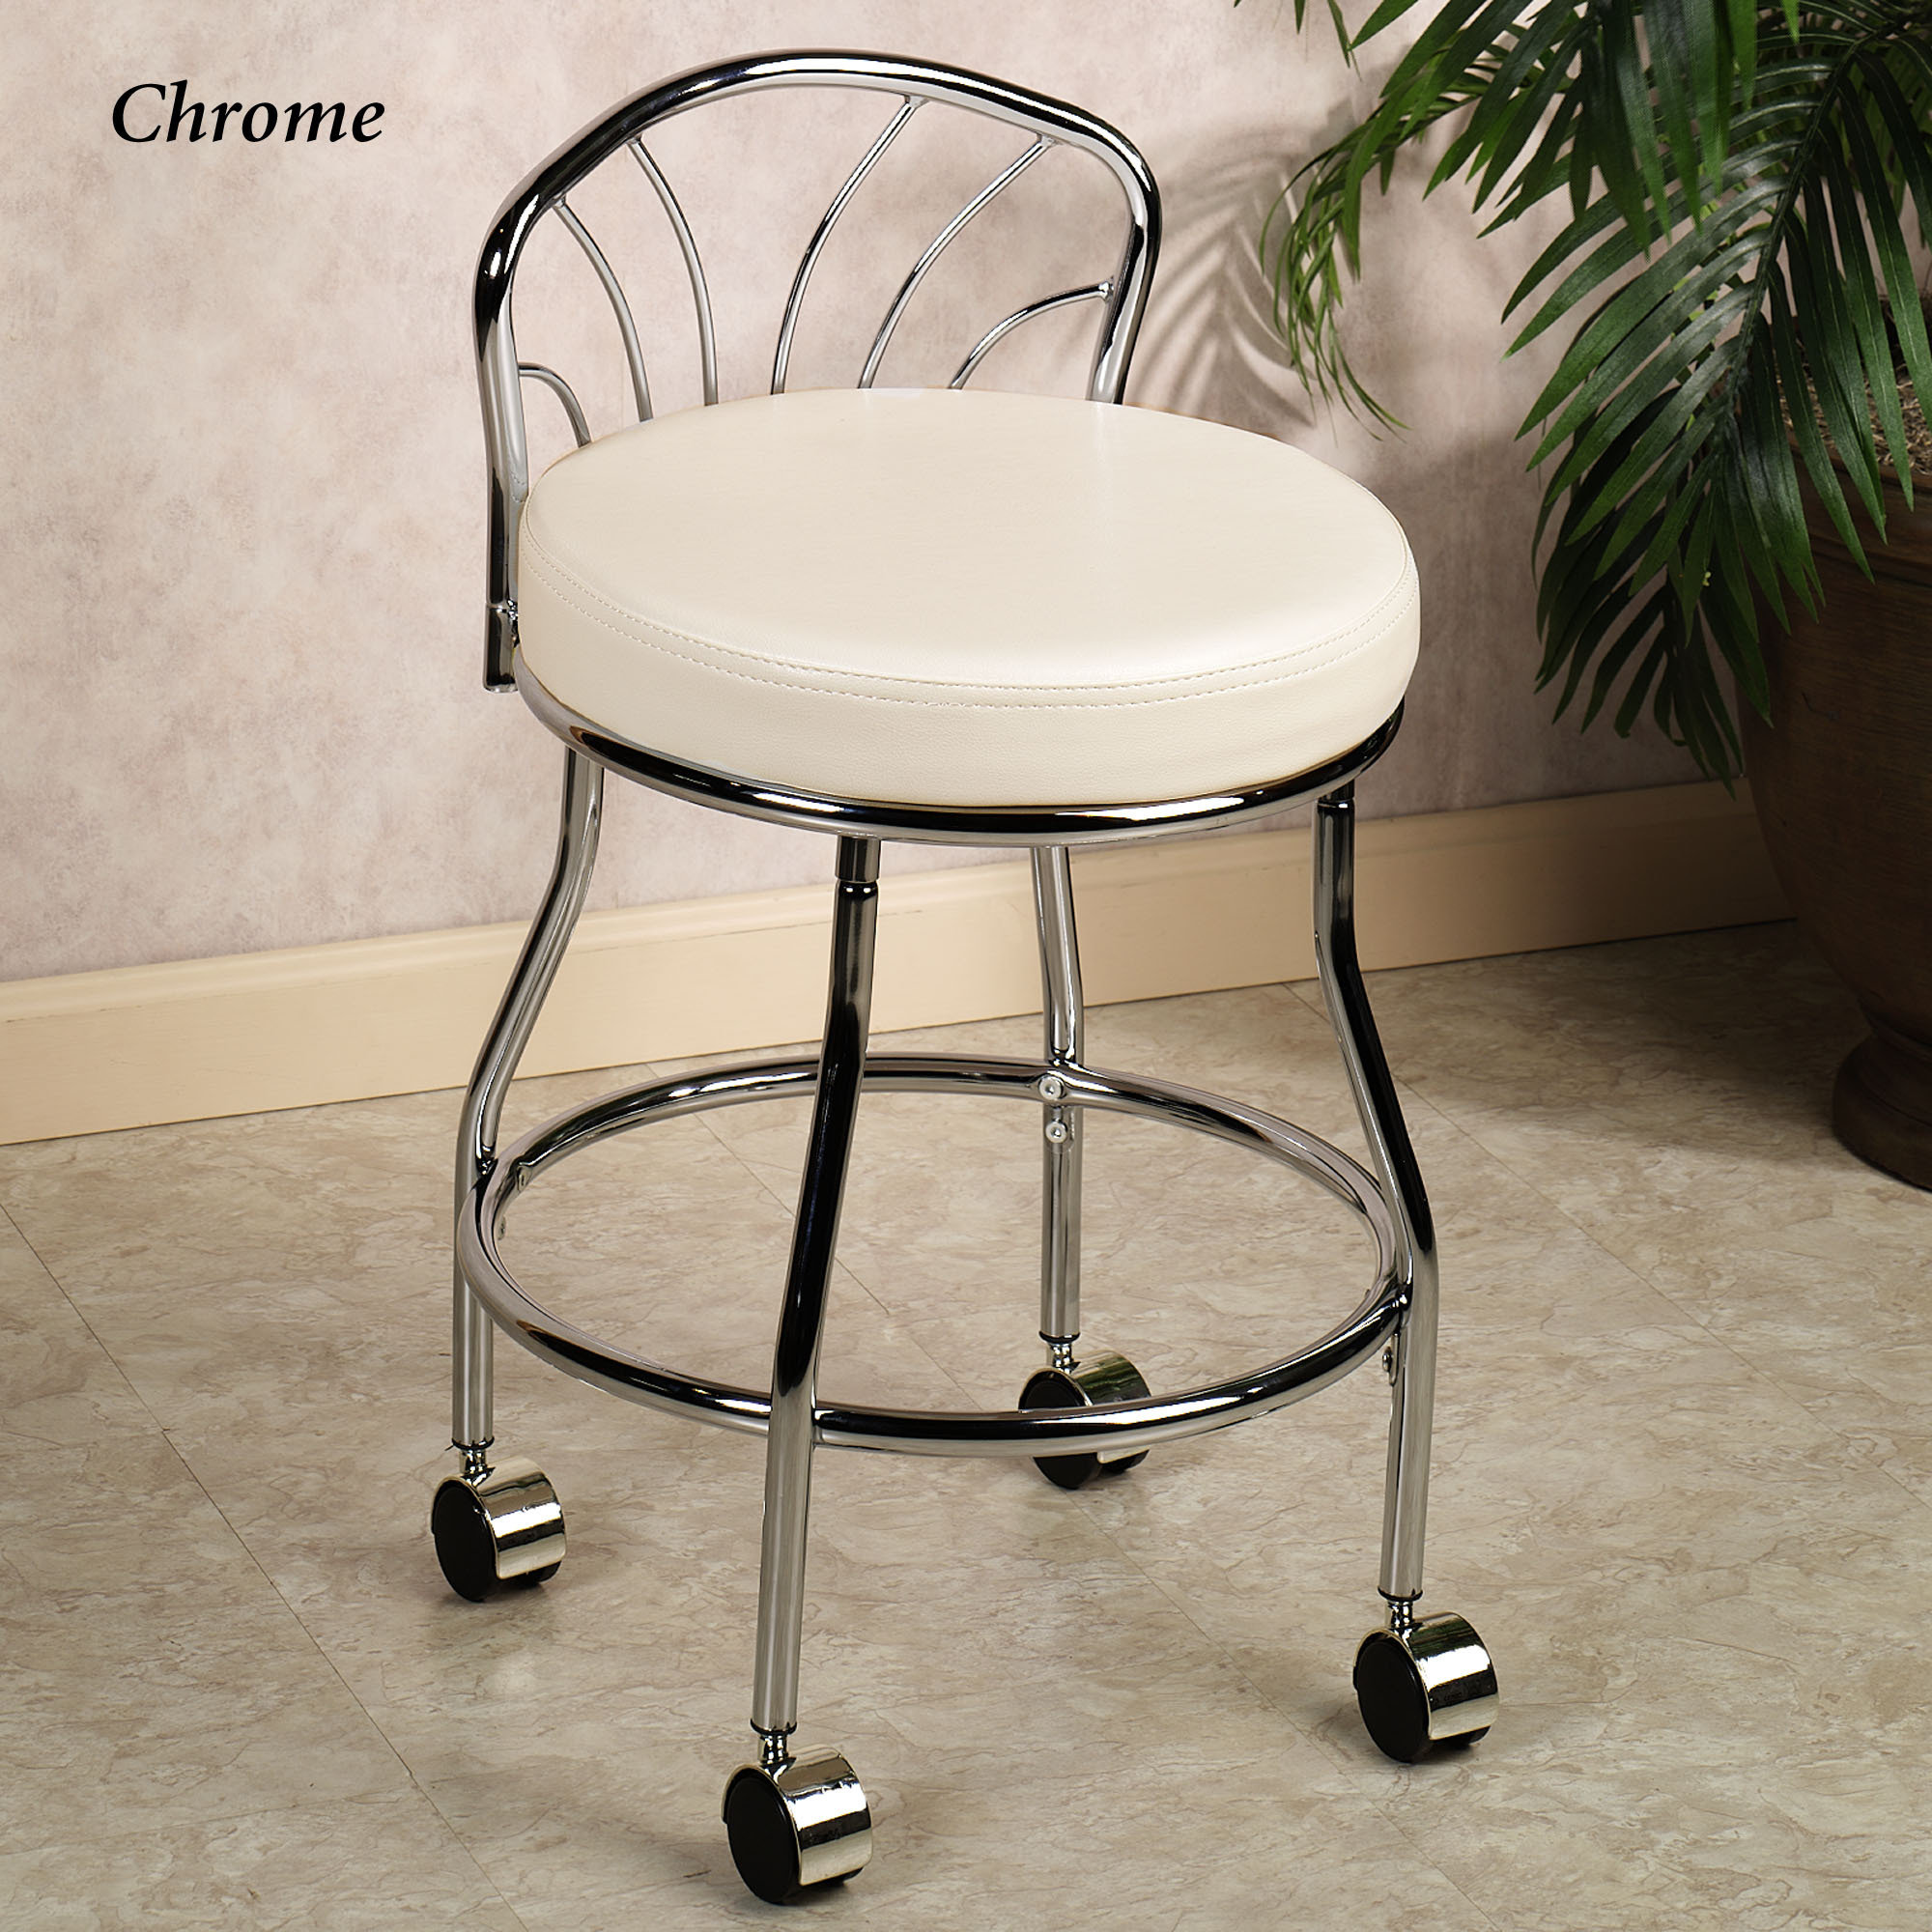 rolling bath chair chippendale chairs for sale vanity stool homesfeed